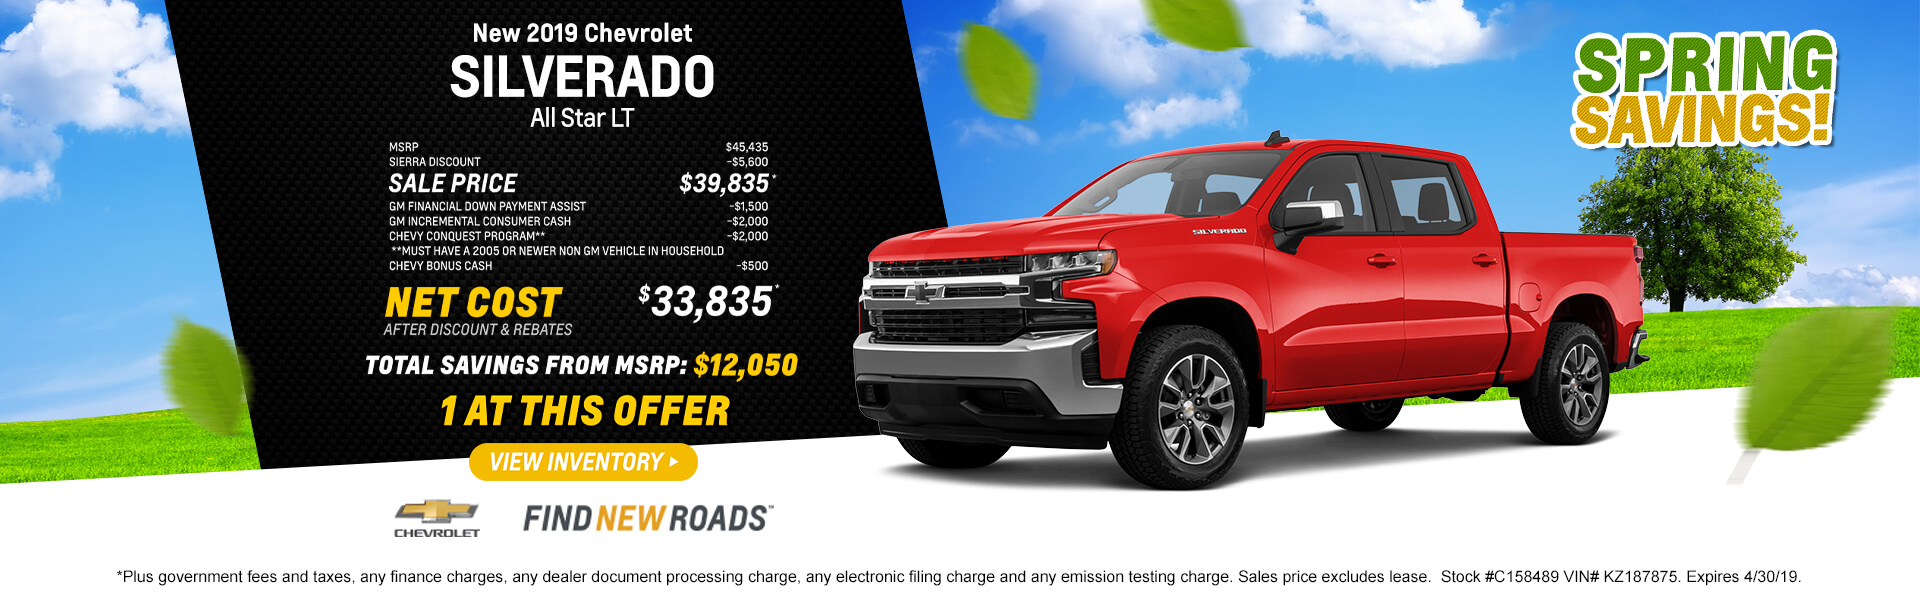 2019 Silverado LT Purchase $33,835 *Plus government fees and taxes, any finance charges, any dealer document processing charge, any electronic filing charge and any emission testing charge. Sales price excludes lease.  Stock #C158489 VIN# KZ187875. Expires 4/30/19.